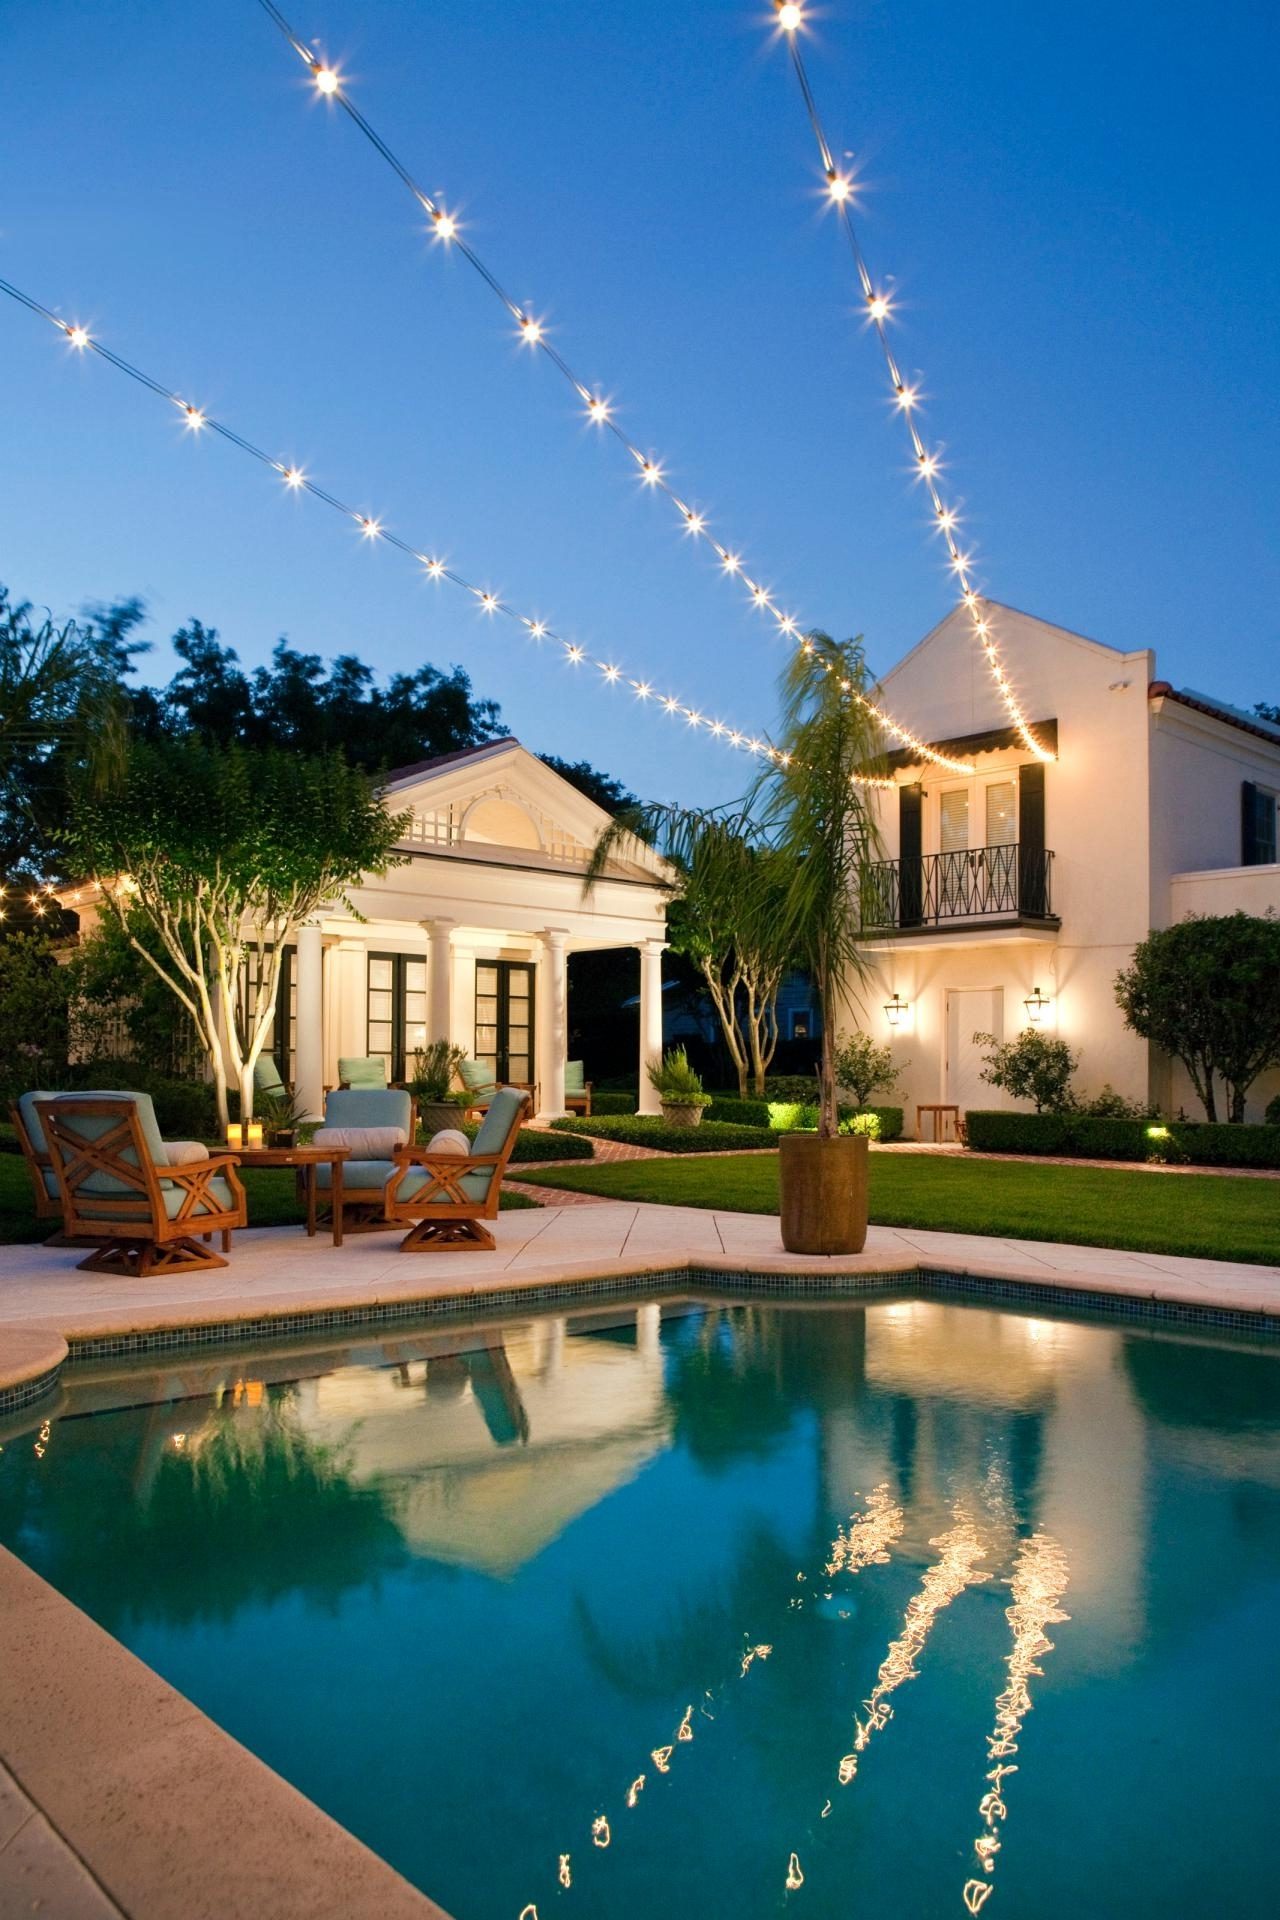 Recent Outdoor Hanging Pool Lights Within 10 Ways To Amp Up Your Outdoor Space With String Lights (Gallery 1 of 20)